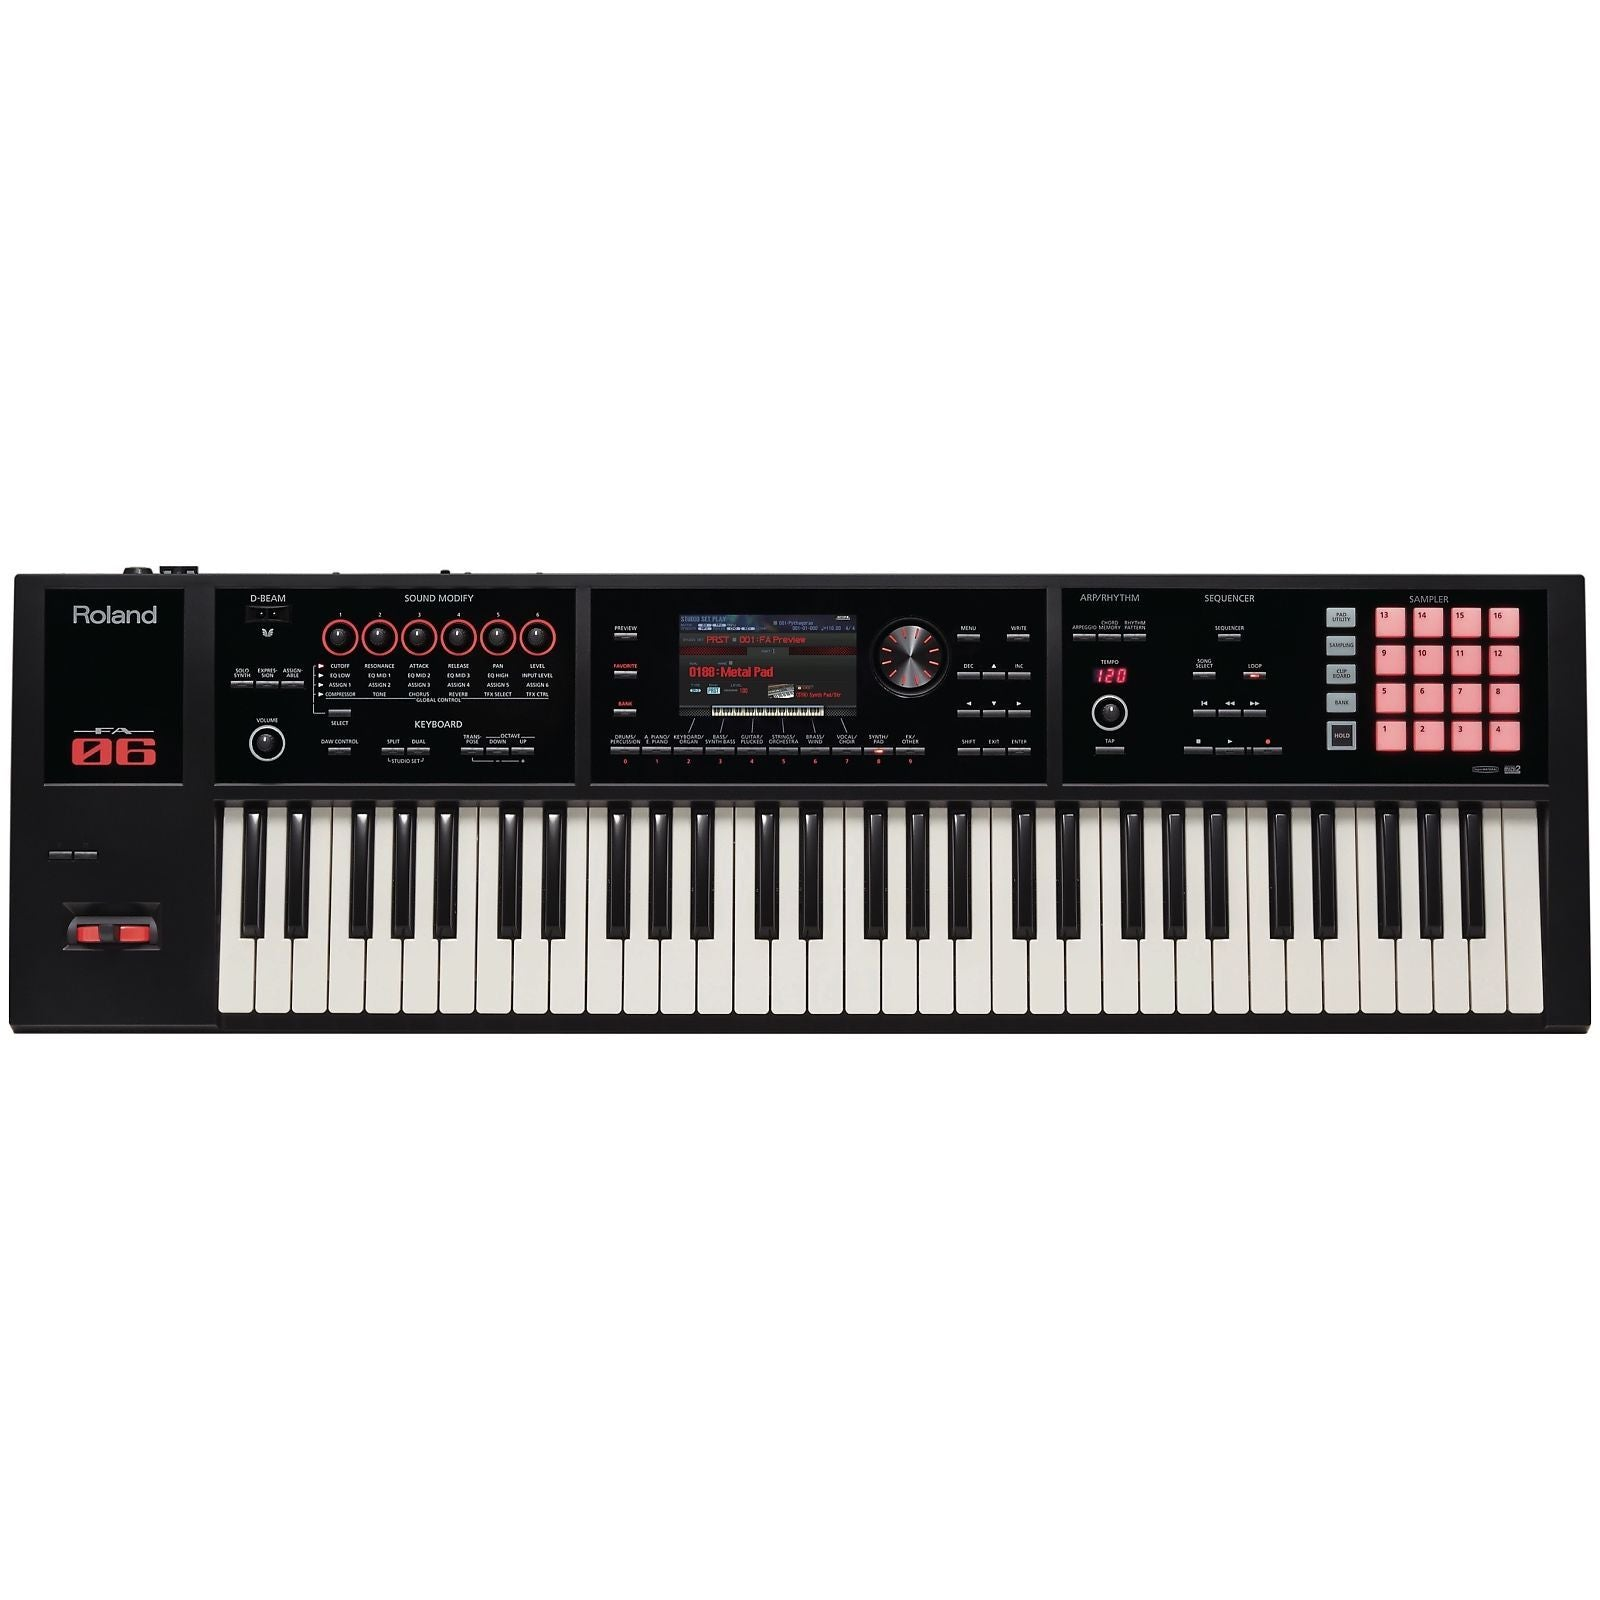 Roland FA-06 Music Workstation Keyboard, 61-Key